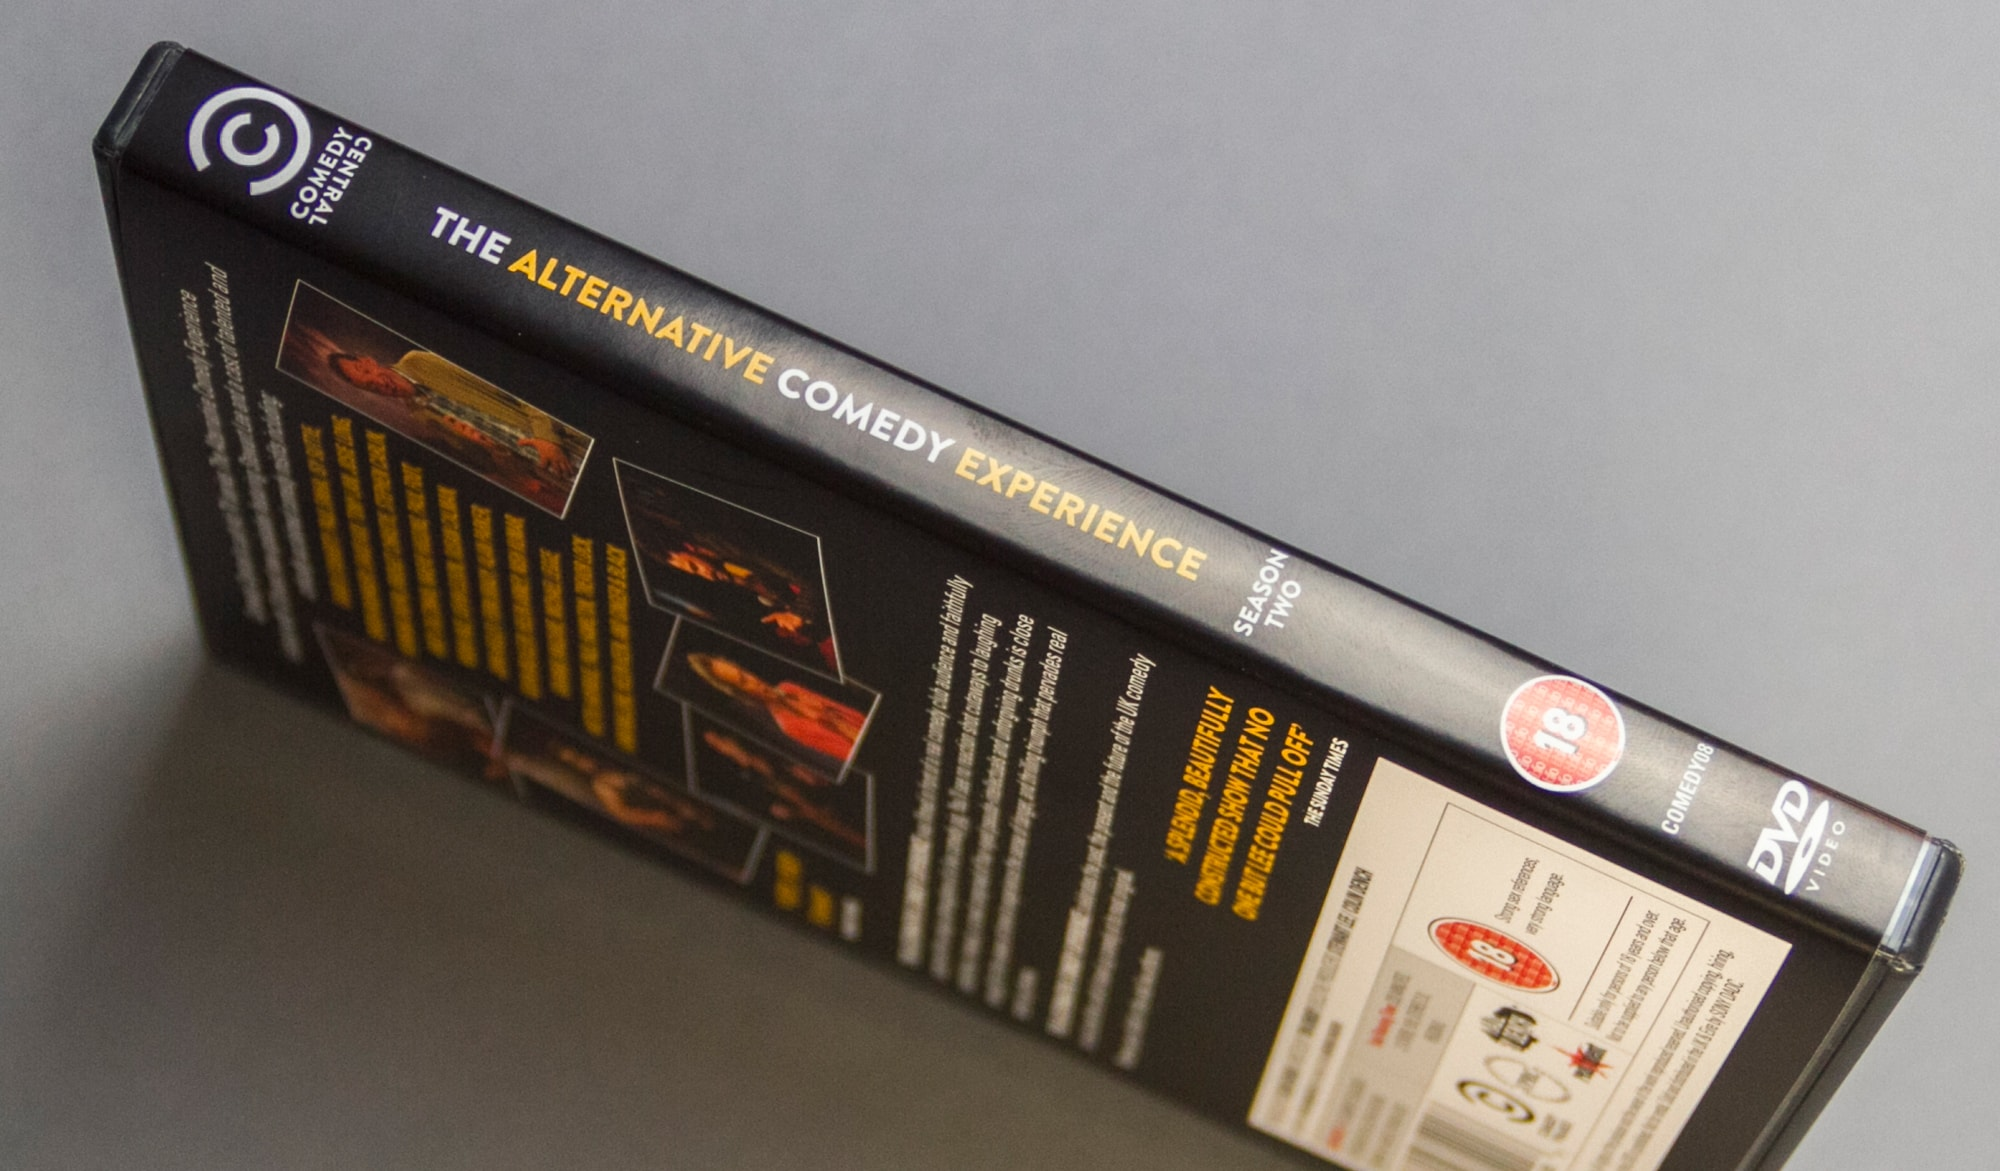 ACE Series 2 DVD spine